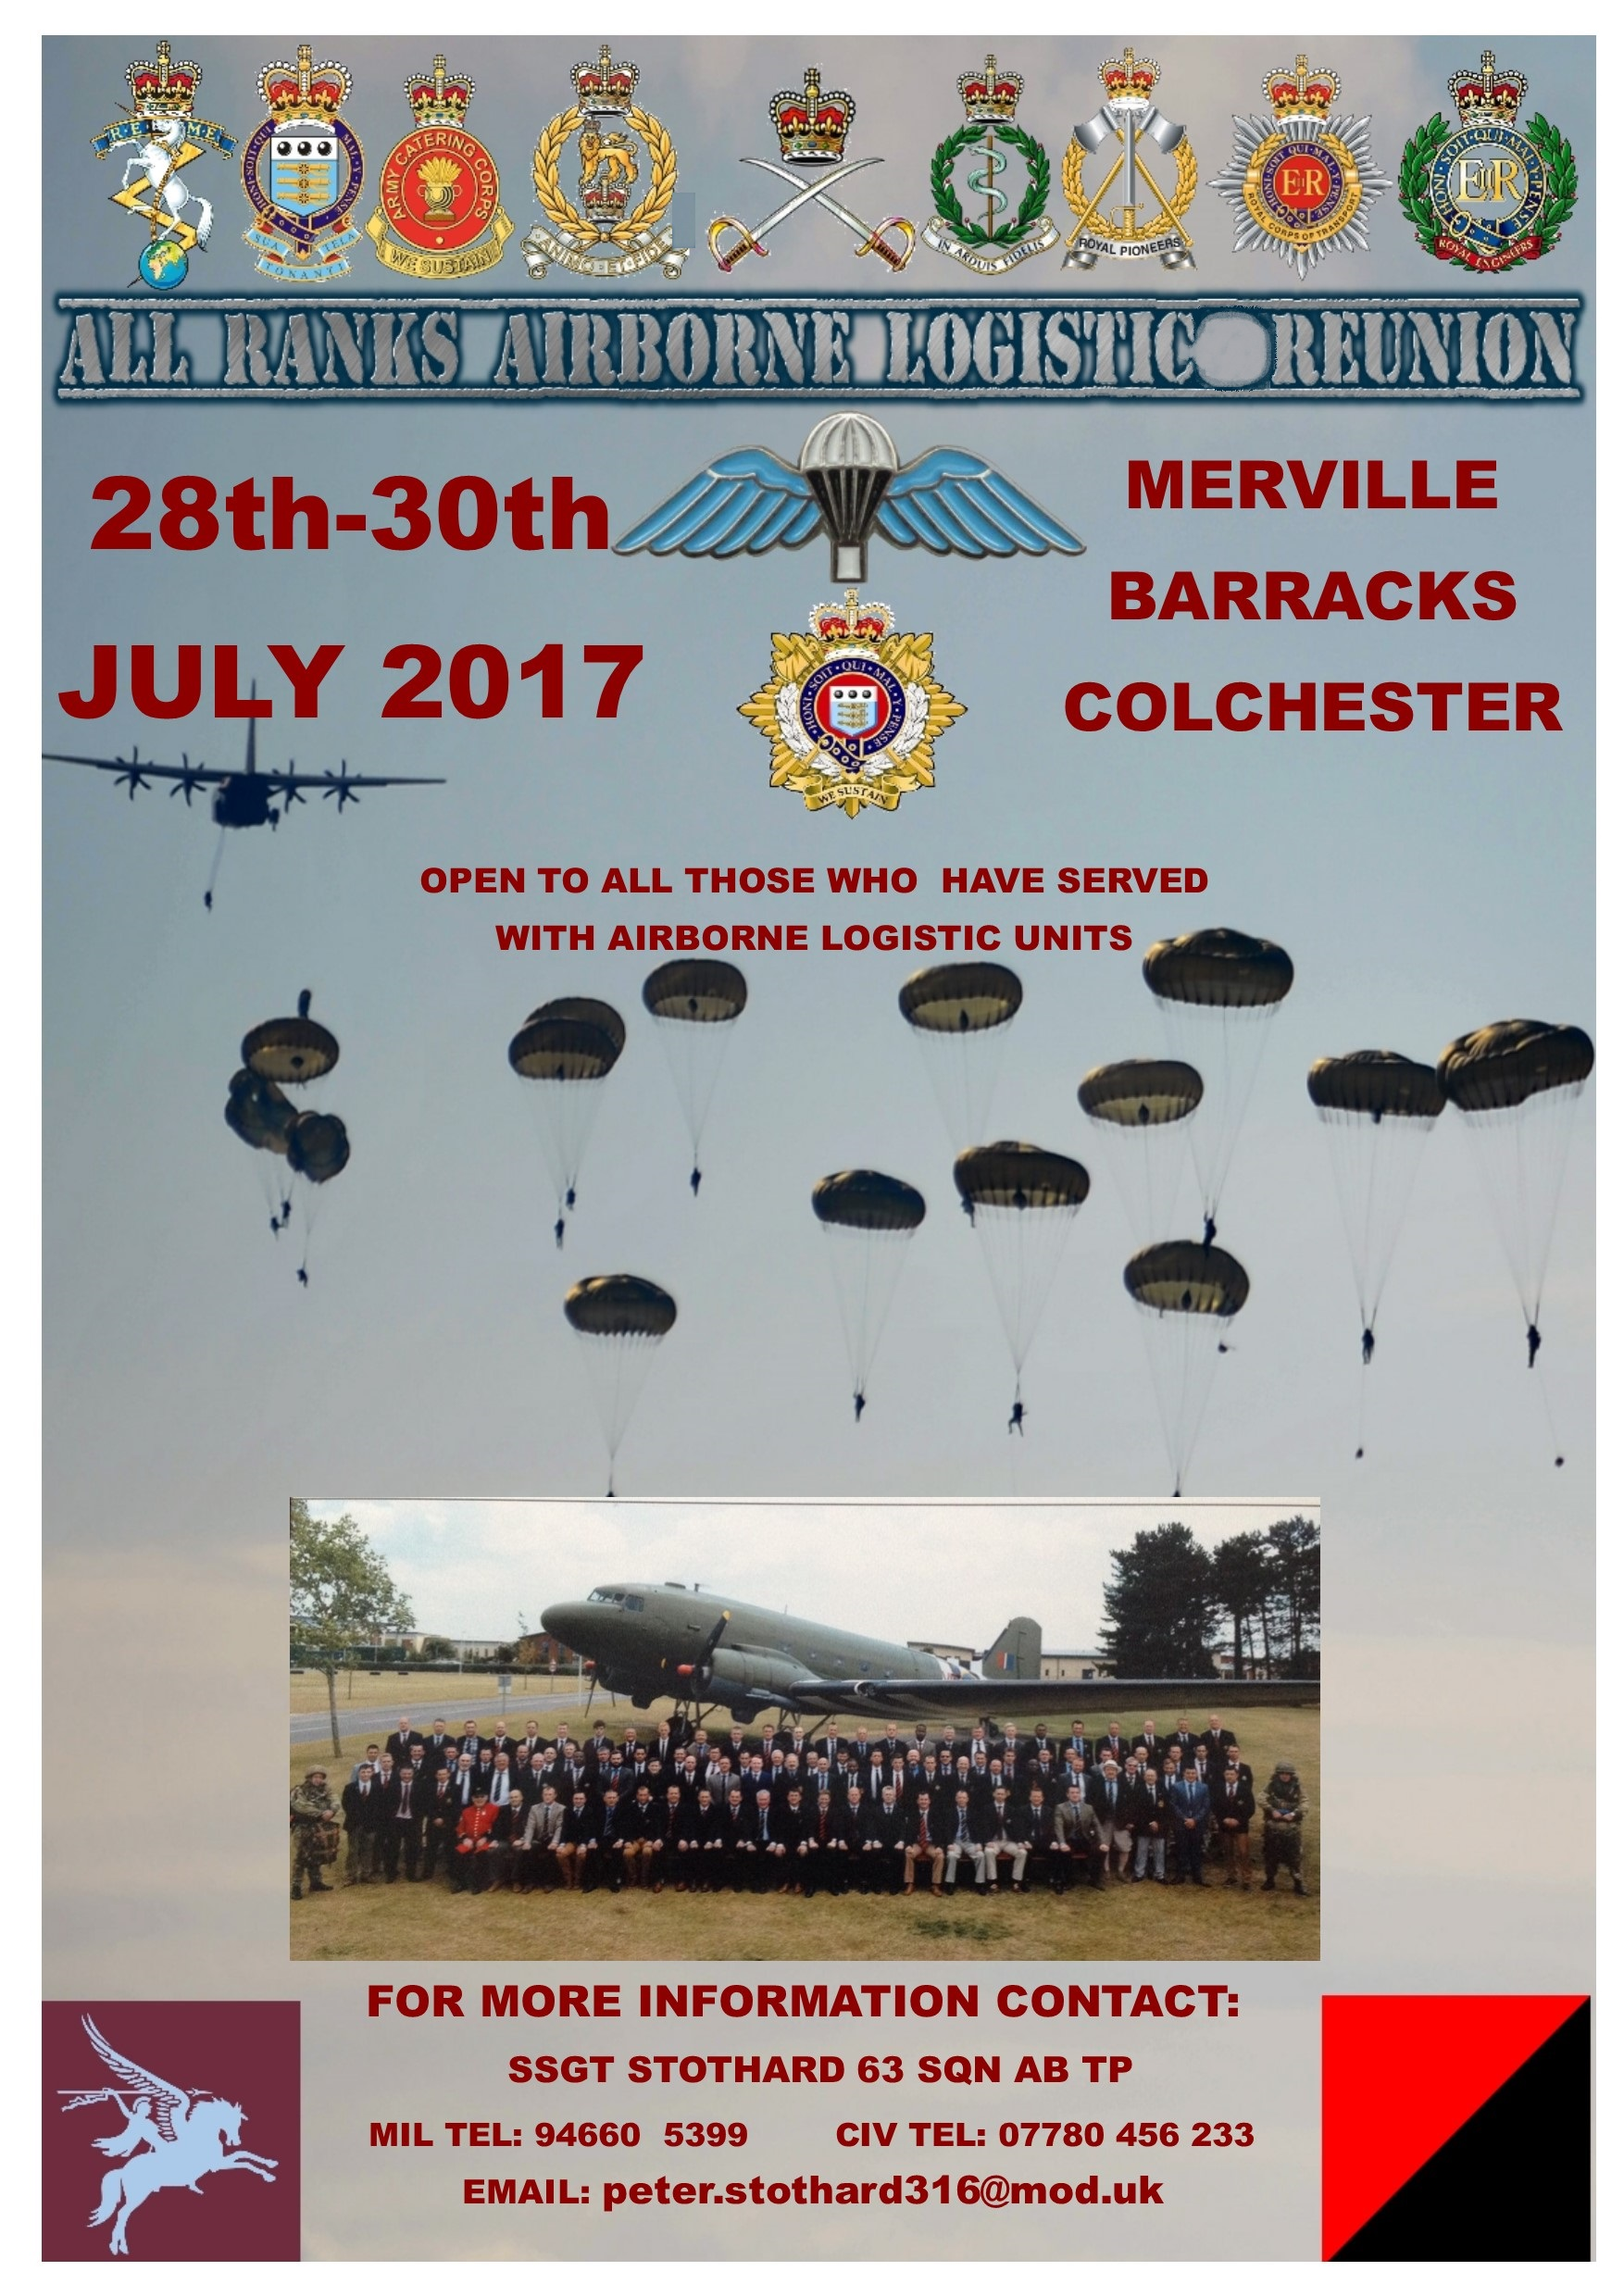 All Ranks Airborne Logistic Reunion